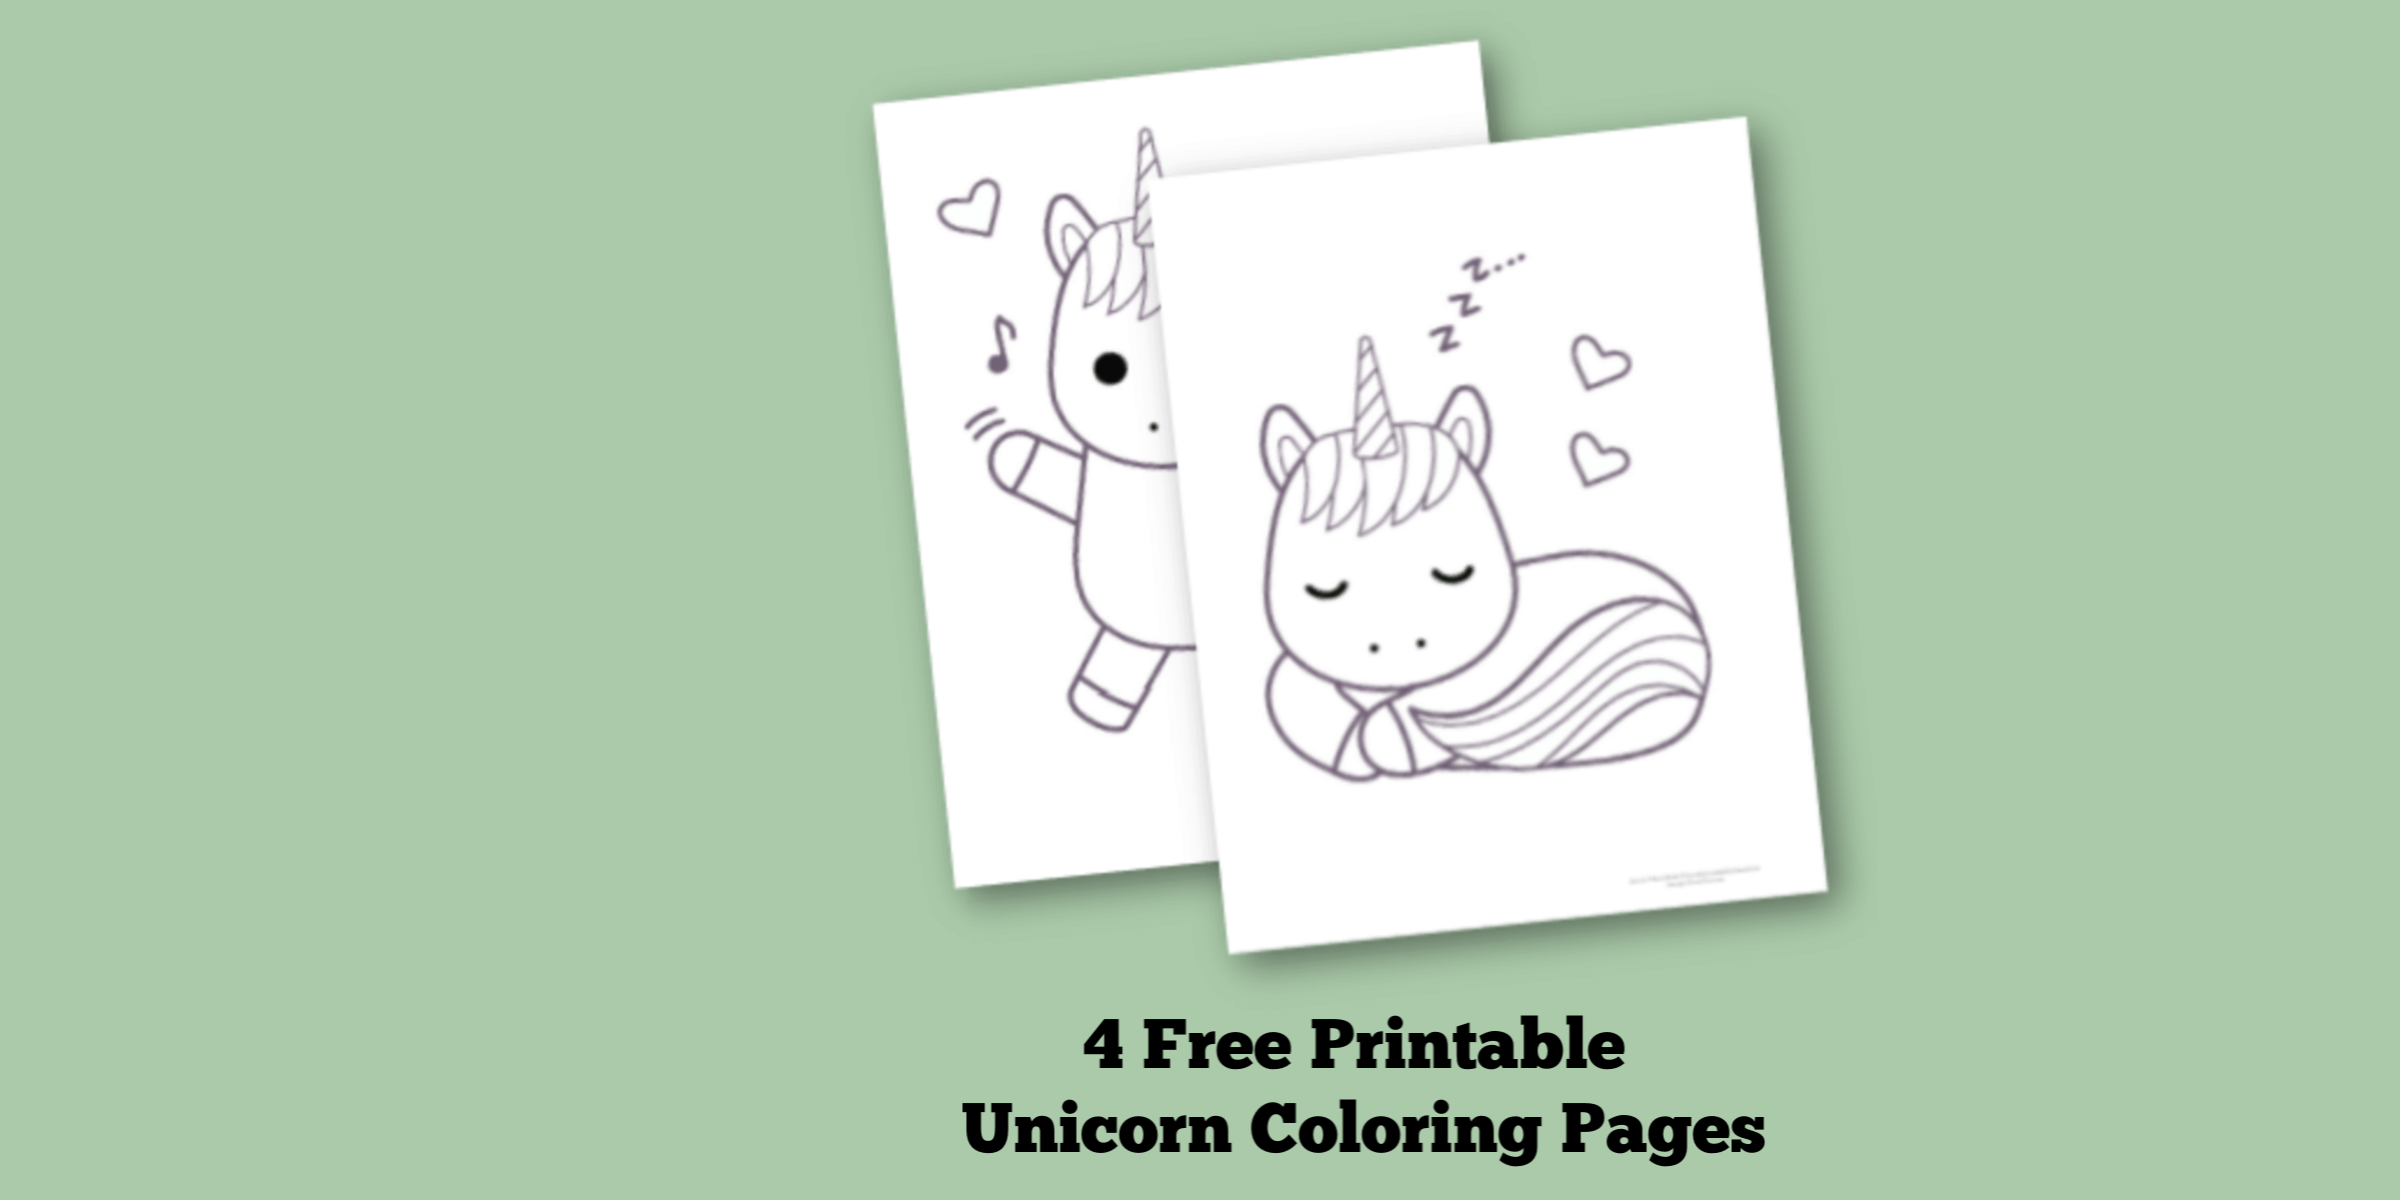 4 Free Printable Unicorn Coloring Pages For Kids